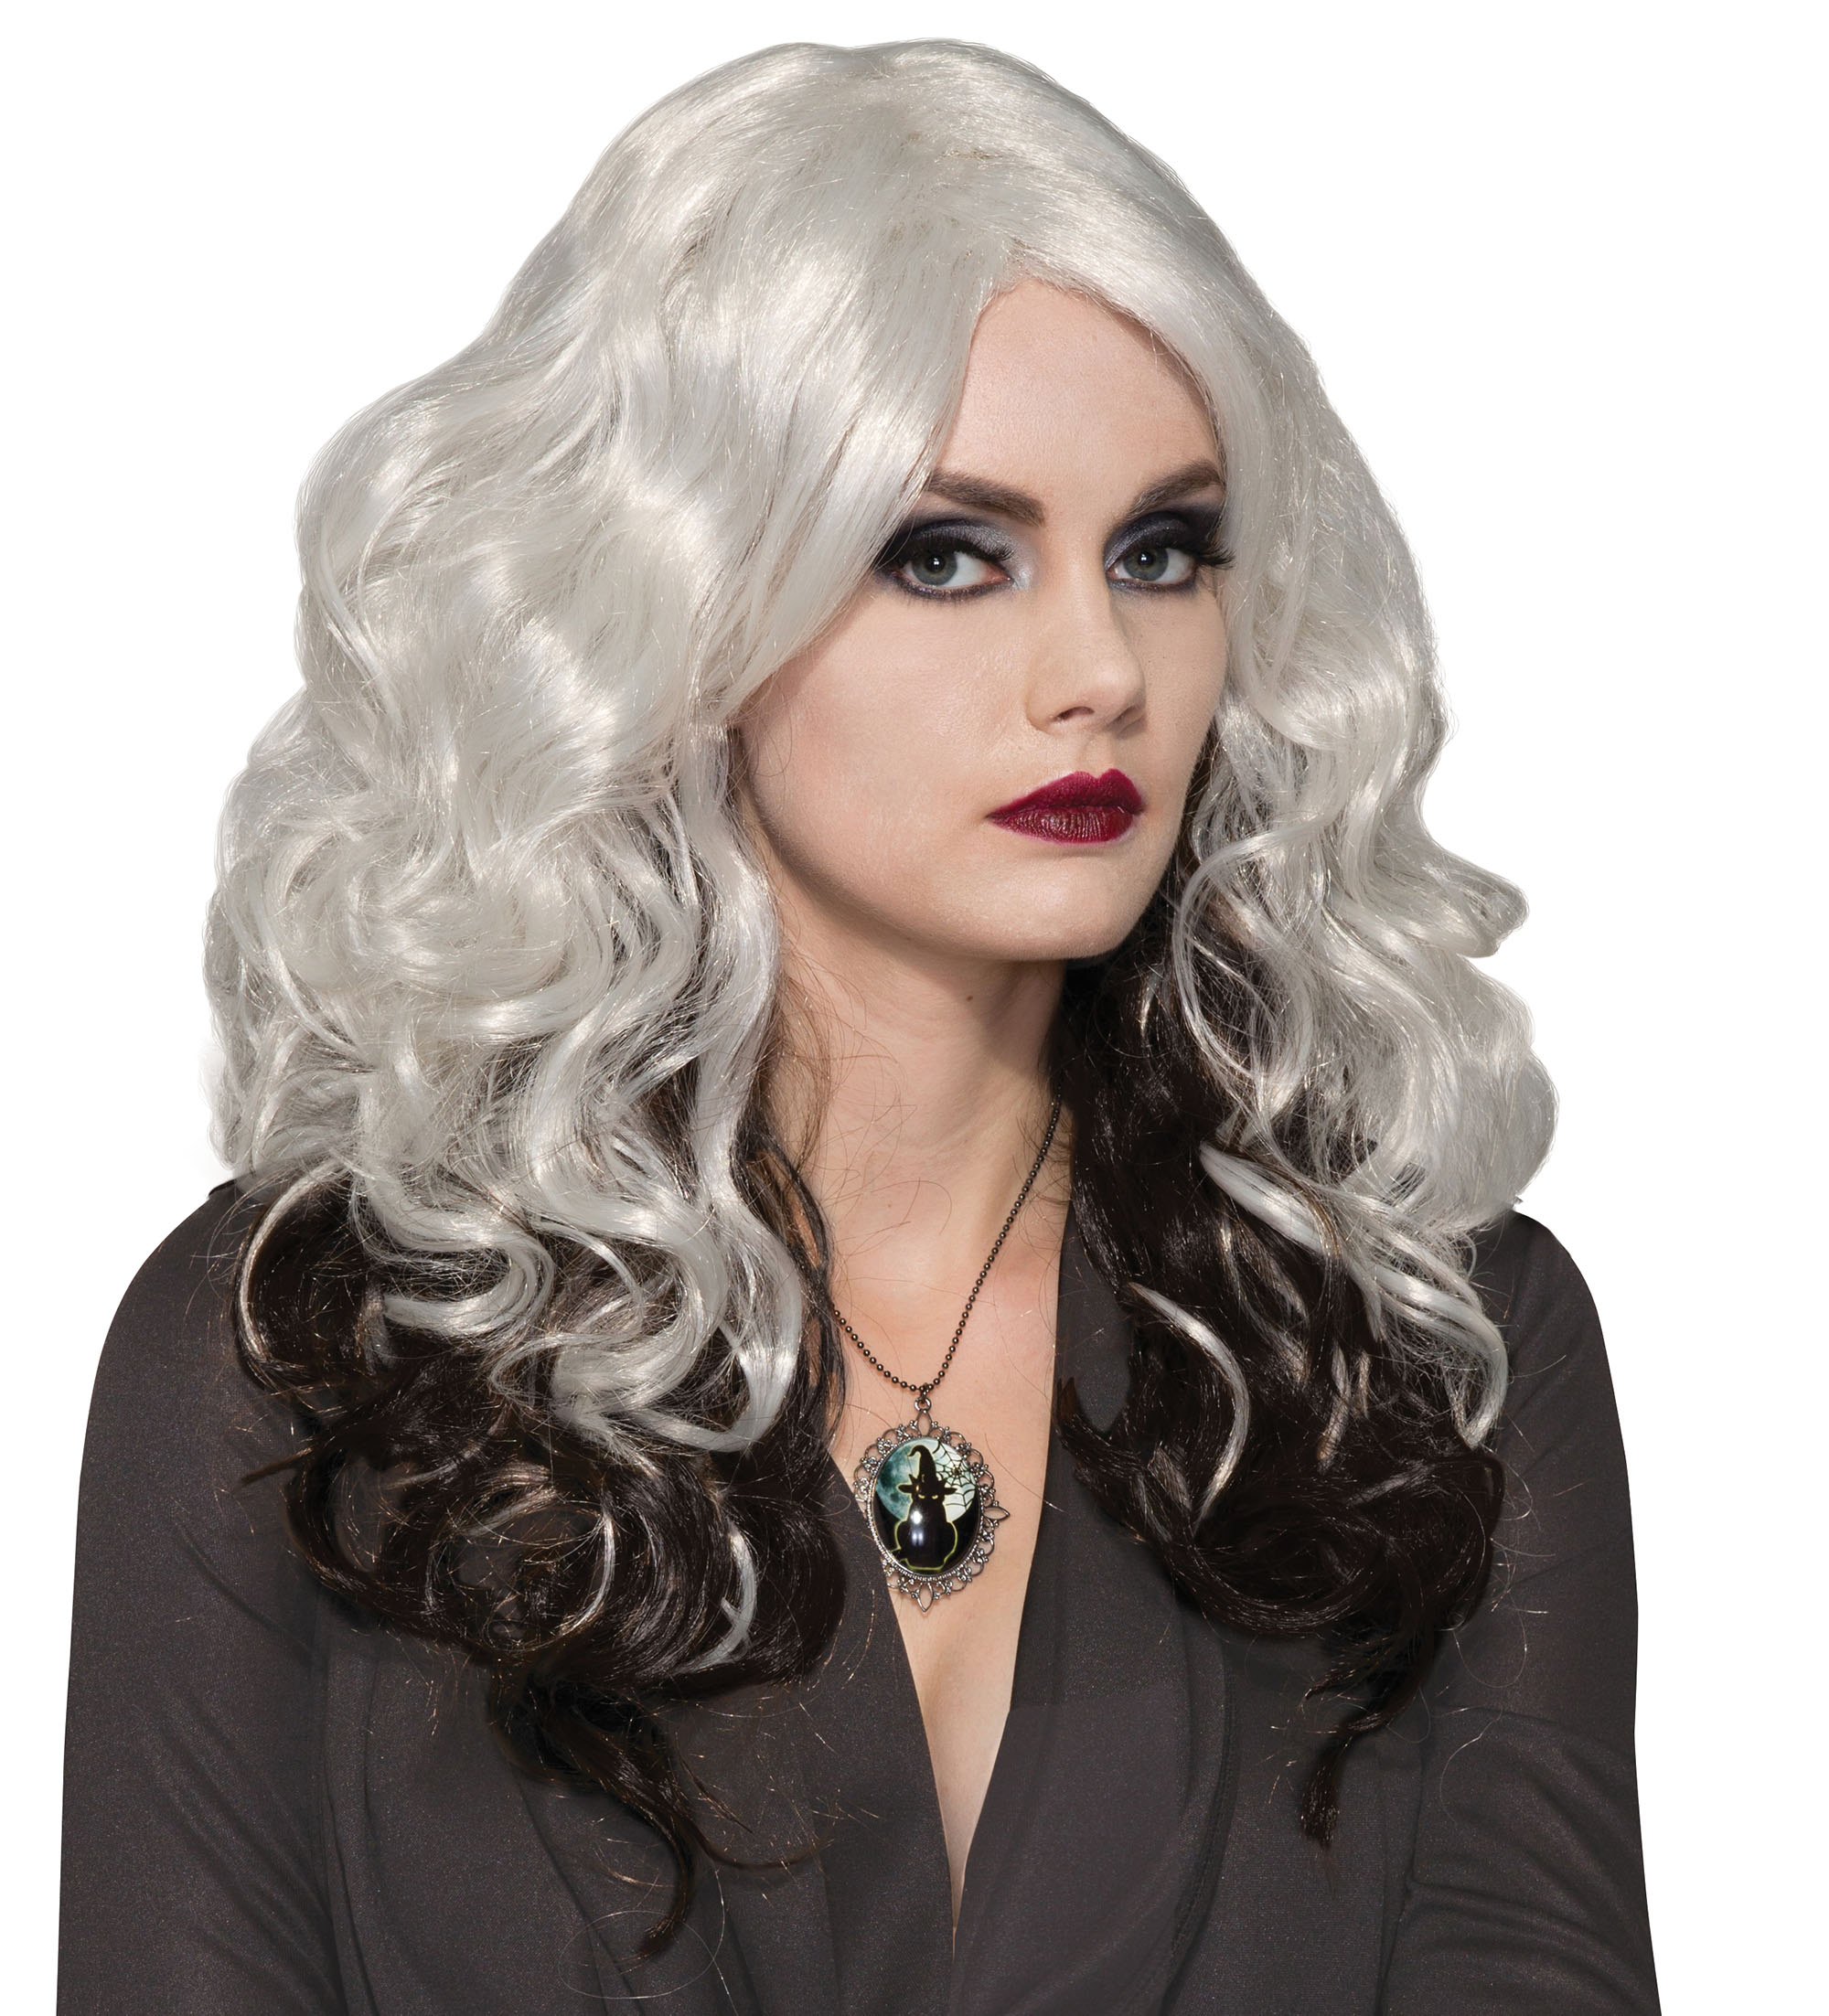 Silver Cast Ladies Halloween Wigs Storm